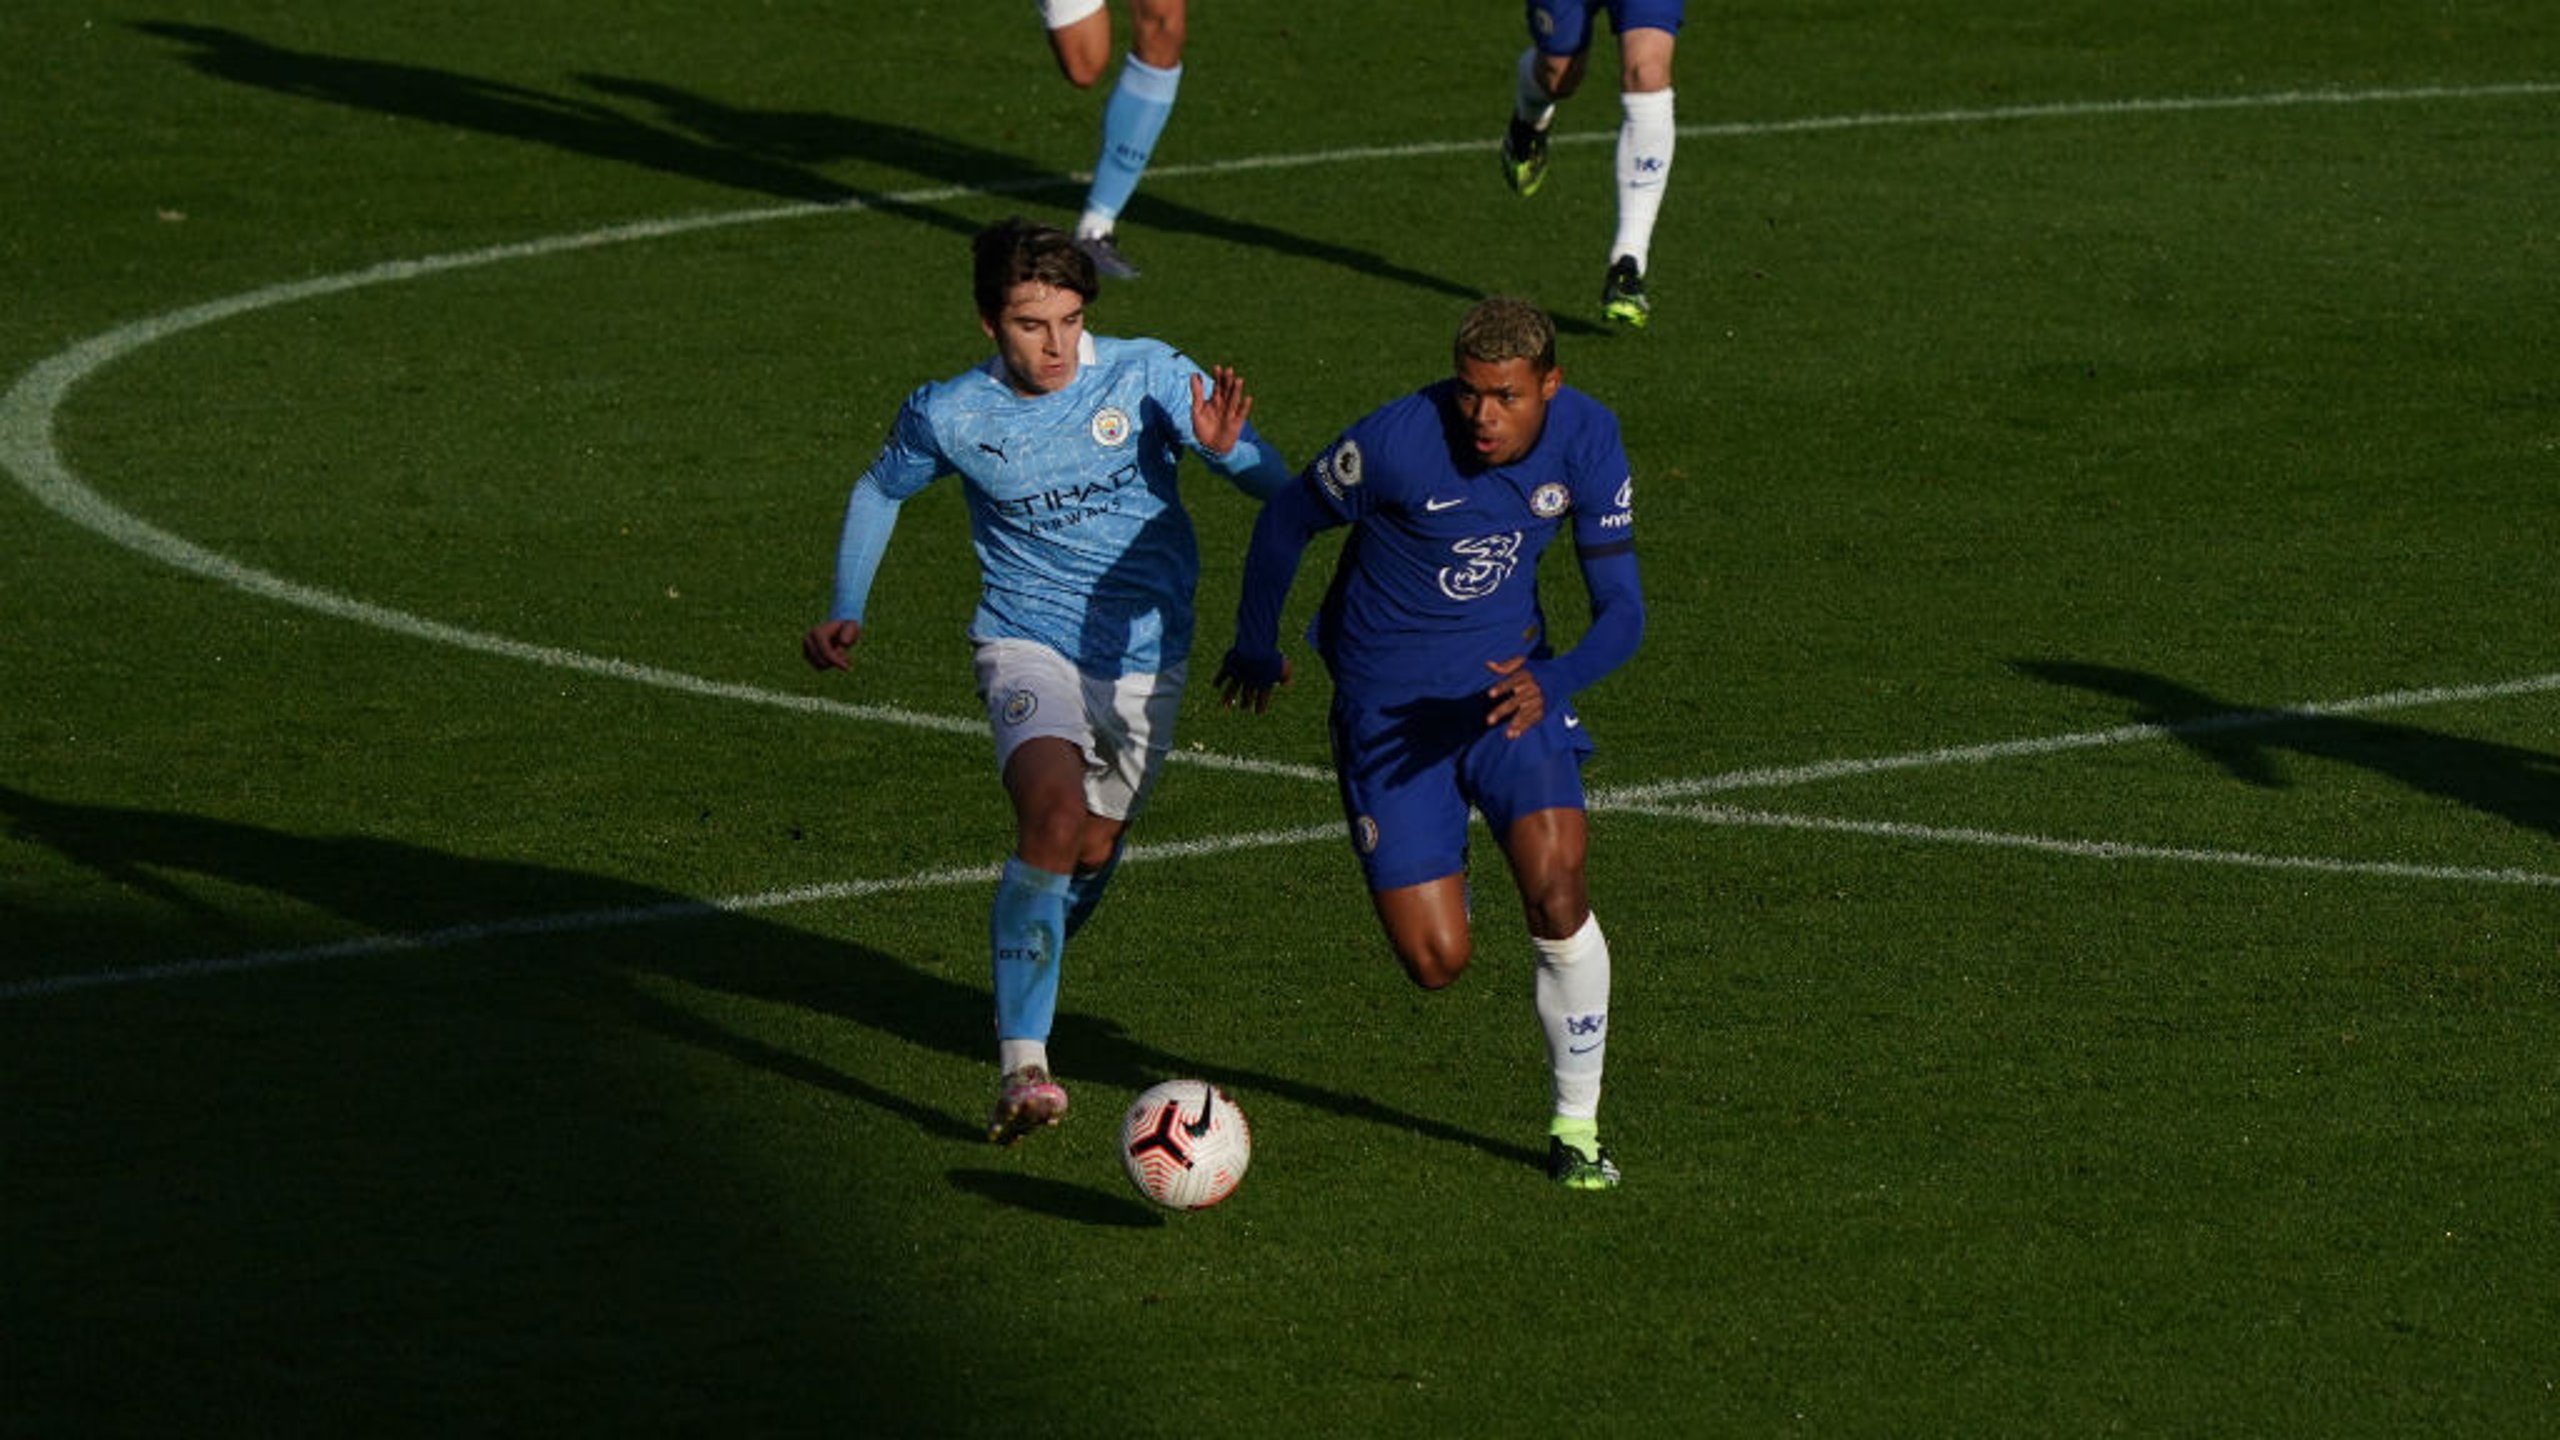 FORWARD MARCH: Adrian Bernabe looks to get City's EDS on the front foot against Chelsea Under-23s